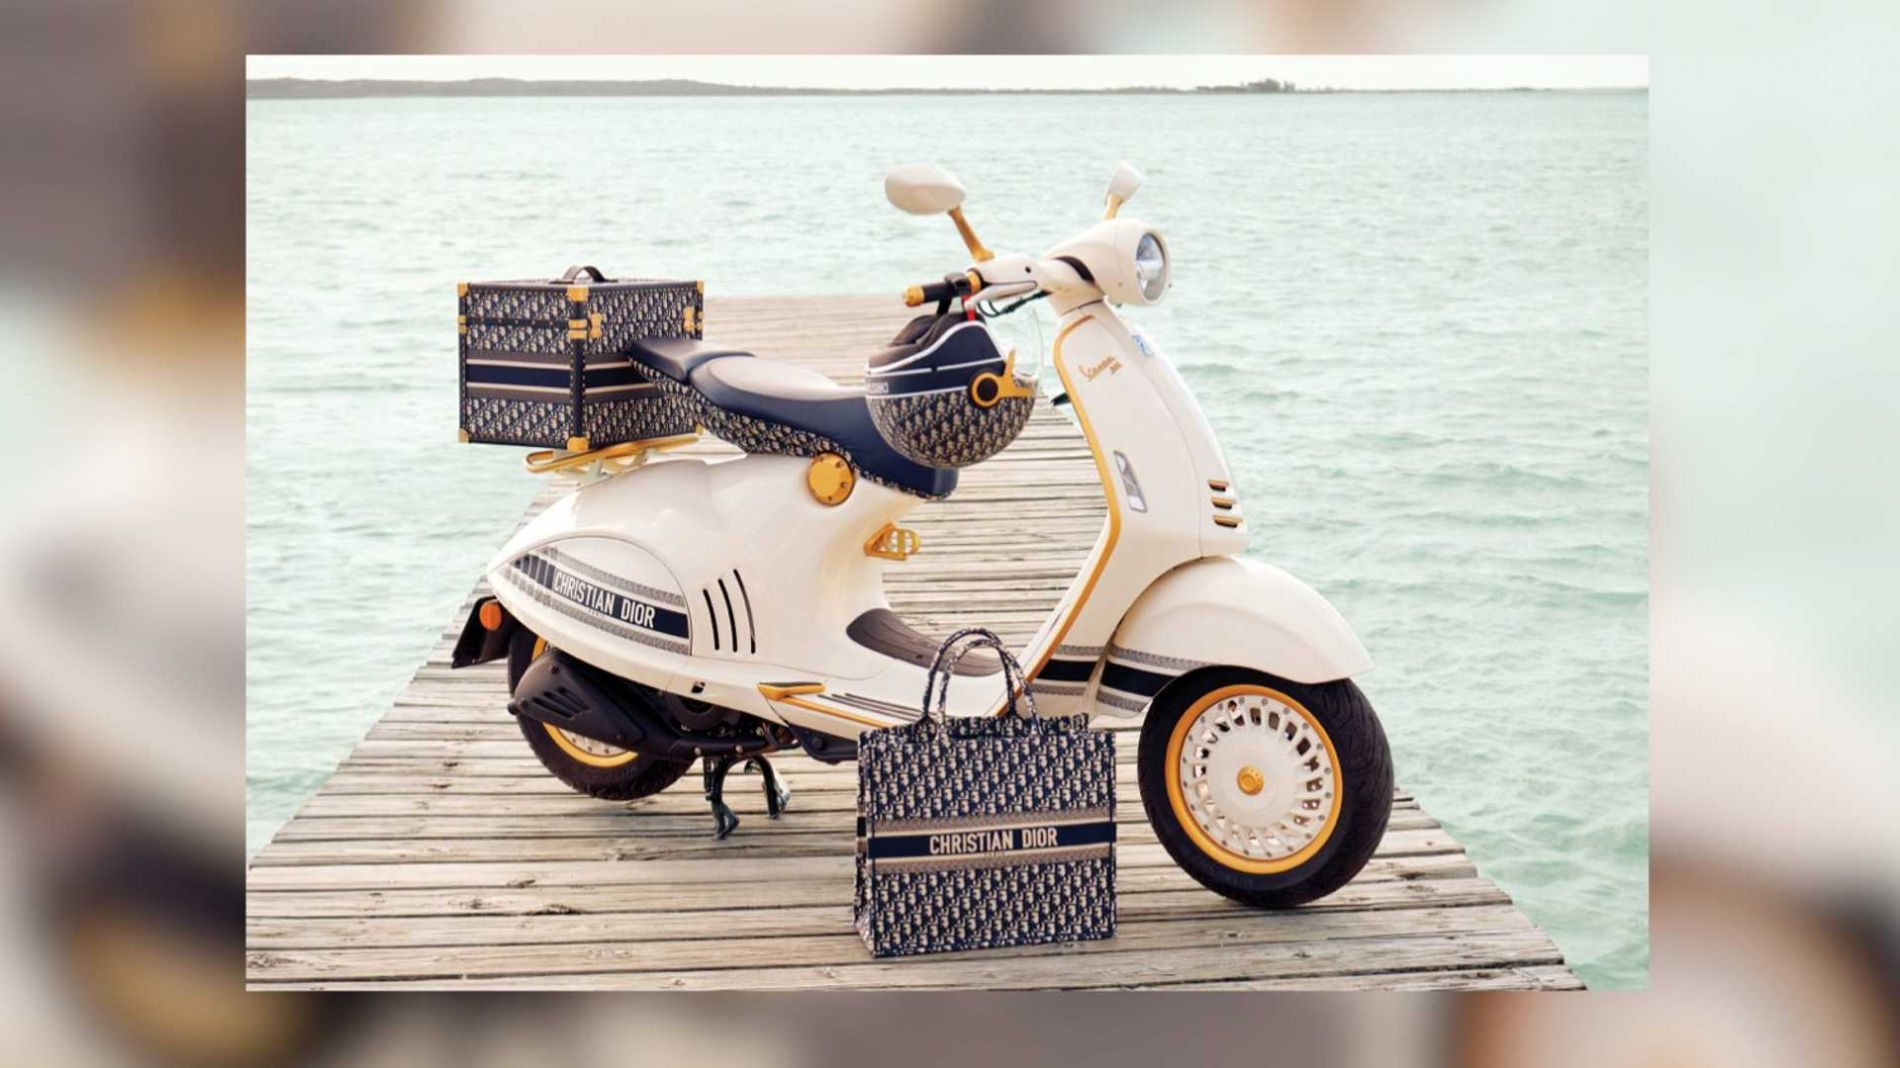 2021 Vespa 946 by Christian Dior